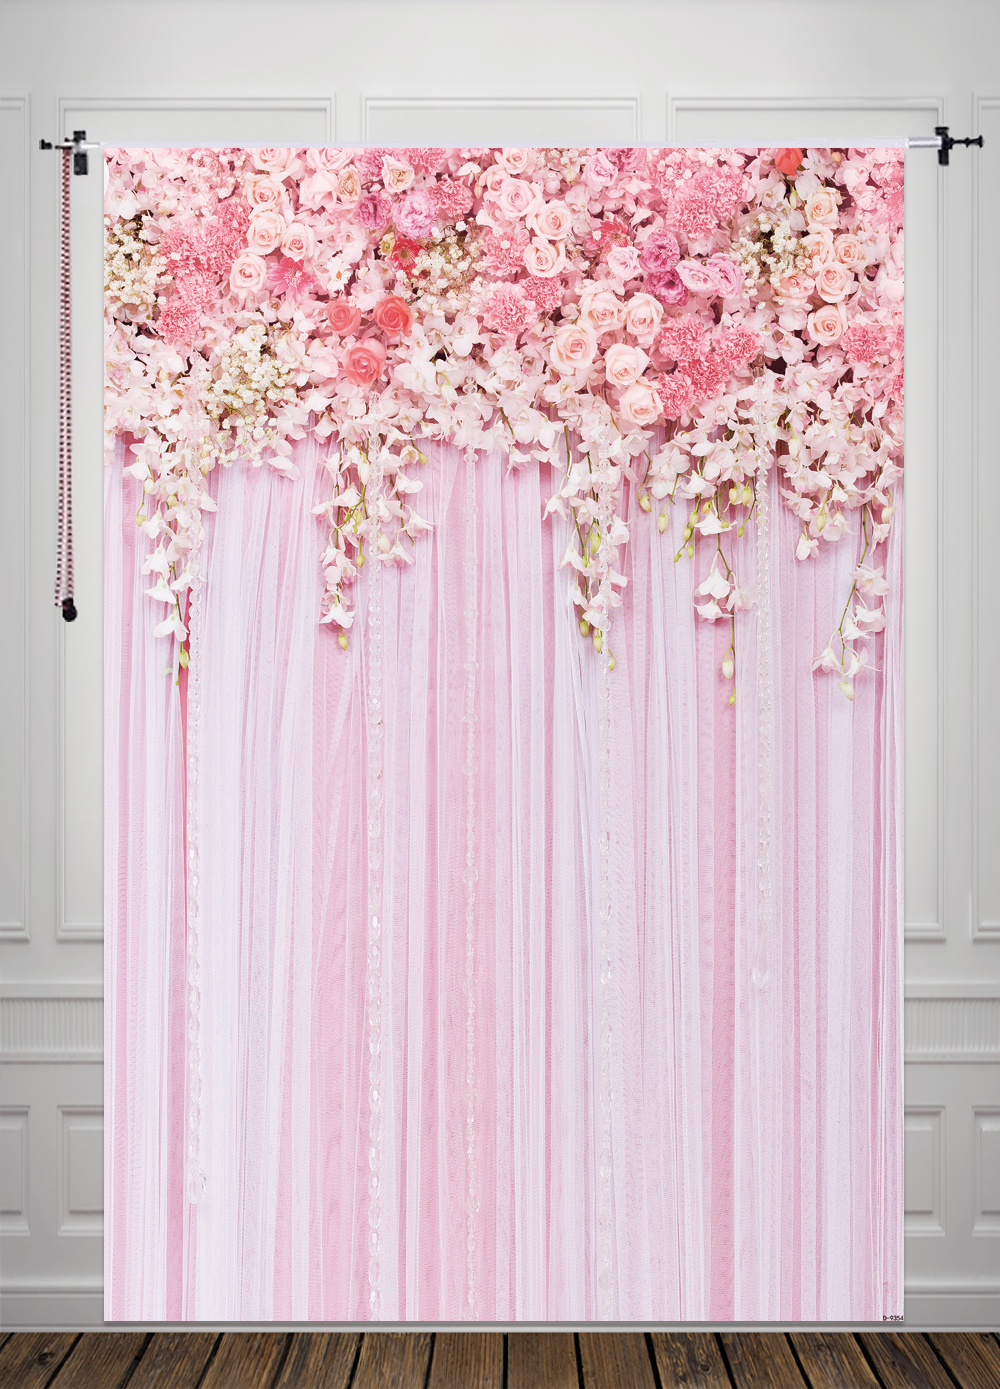 Aliexpress buy huayi pink flowers background for wedding aliexpress buy huayi pink flowers background for wedding newborn backdrop photography background for studio prop vertical d 9354 from reliable pink mightylinksfo